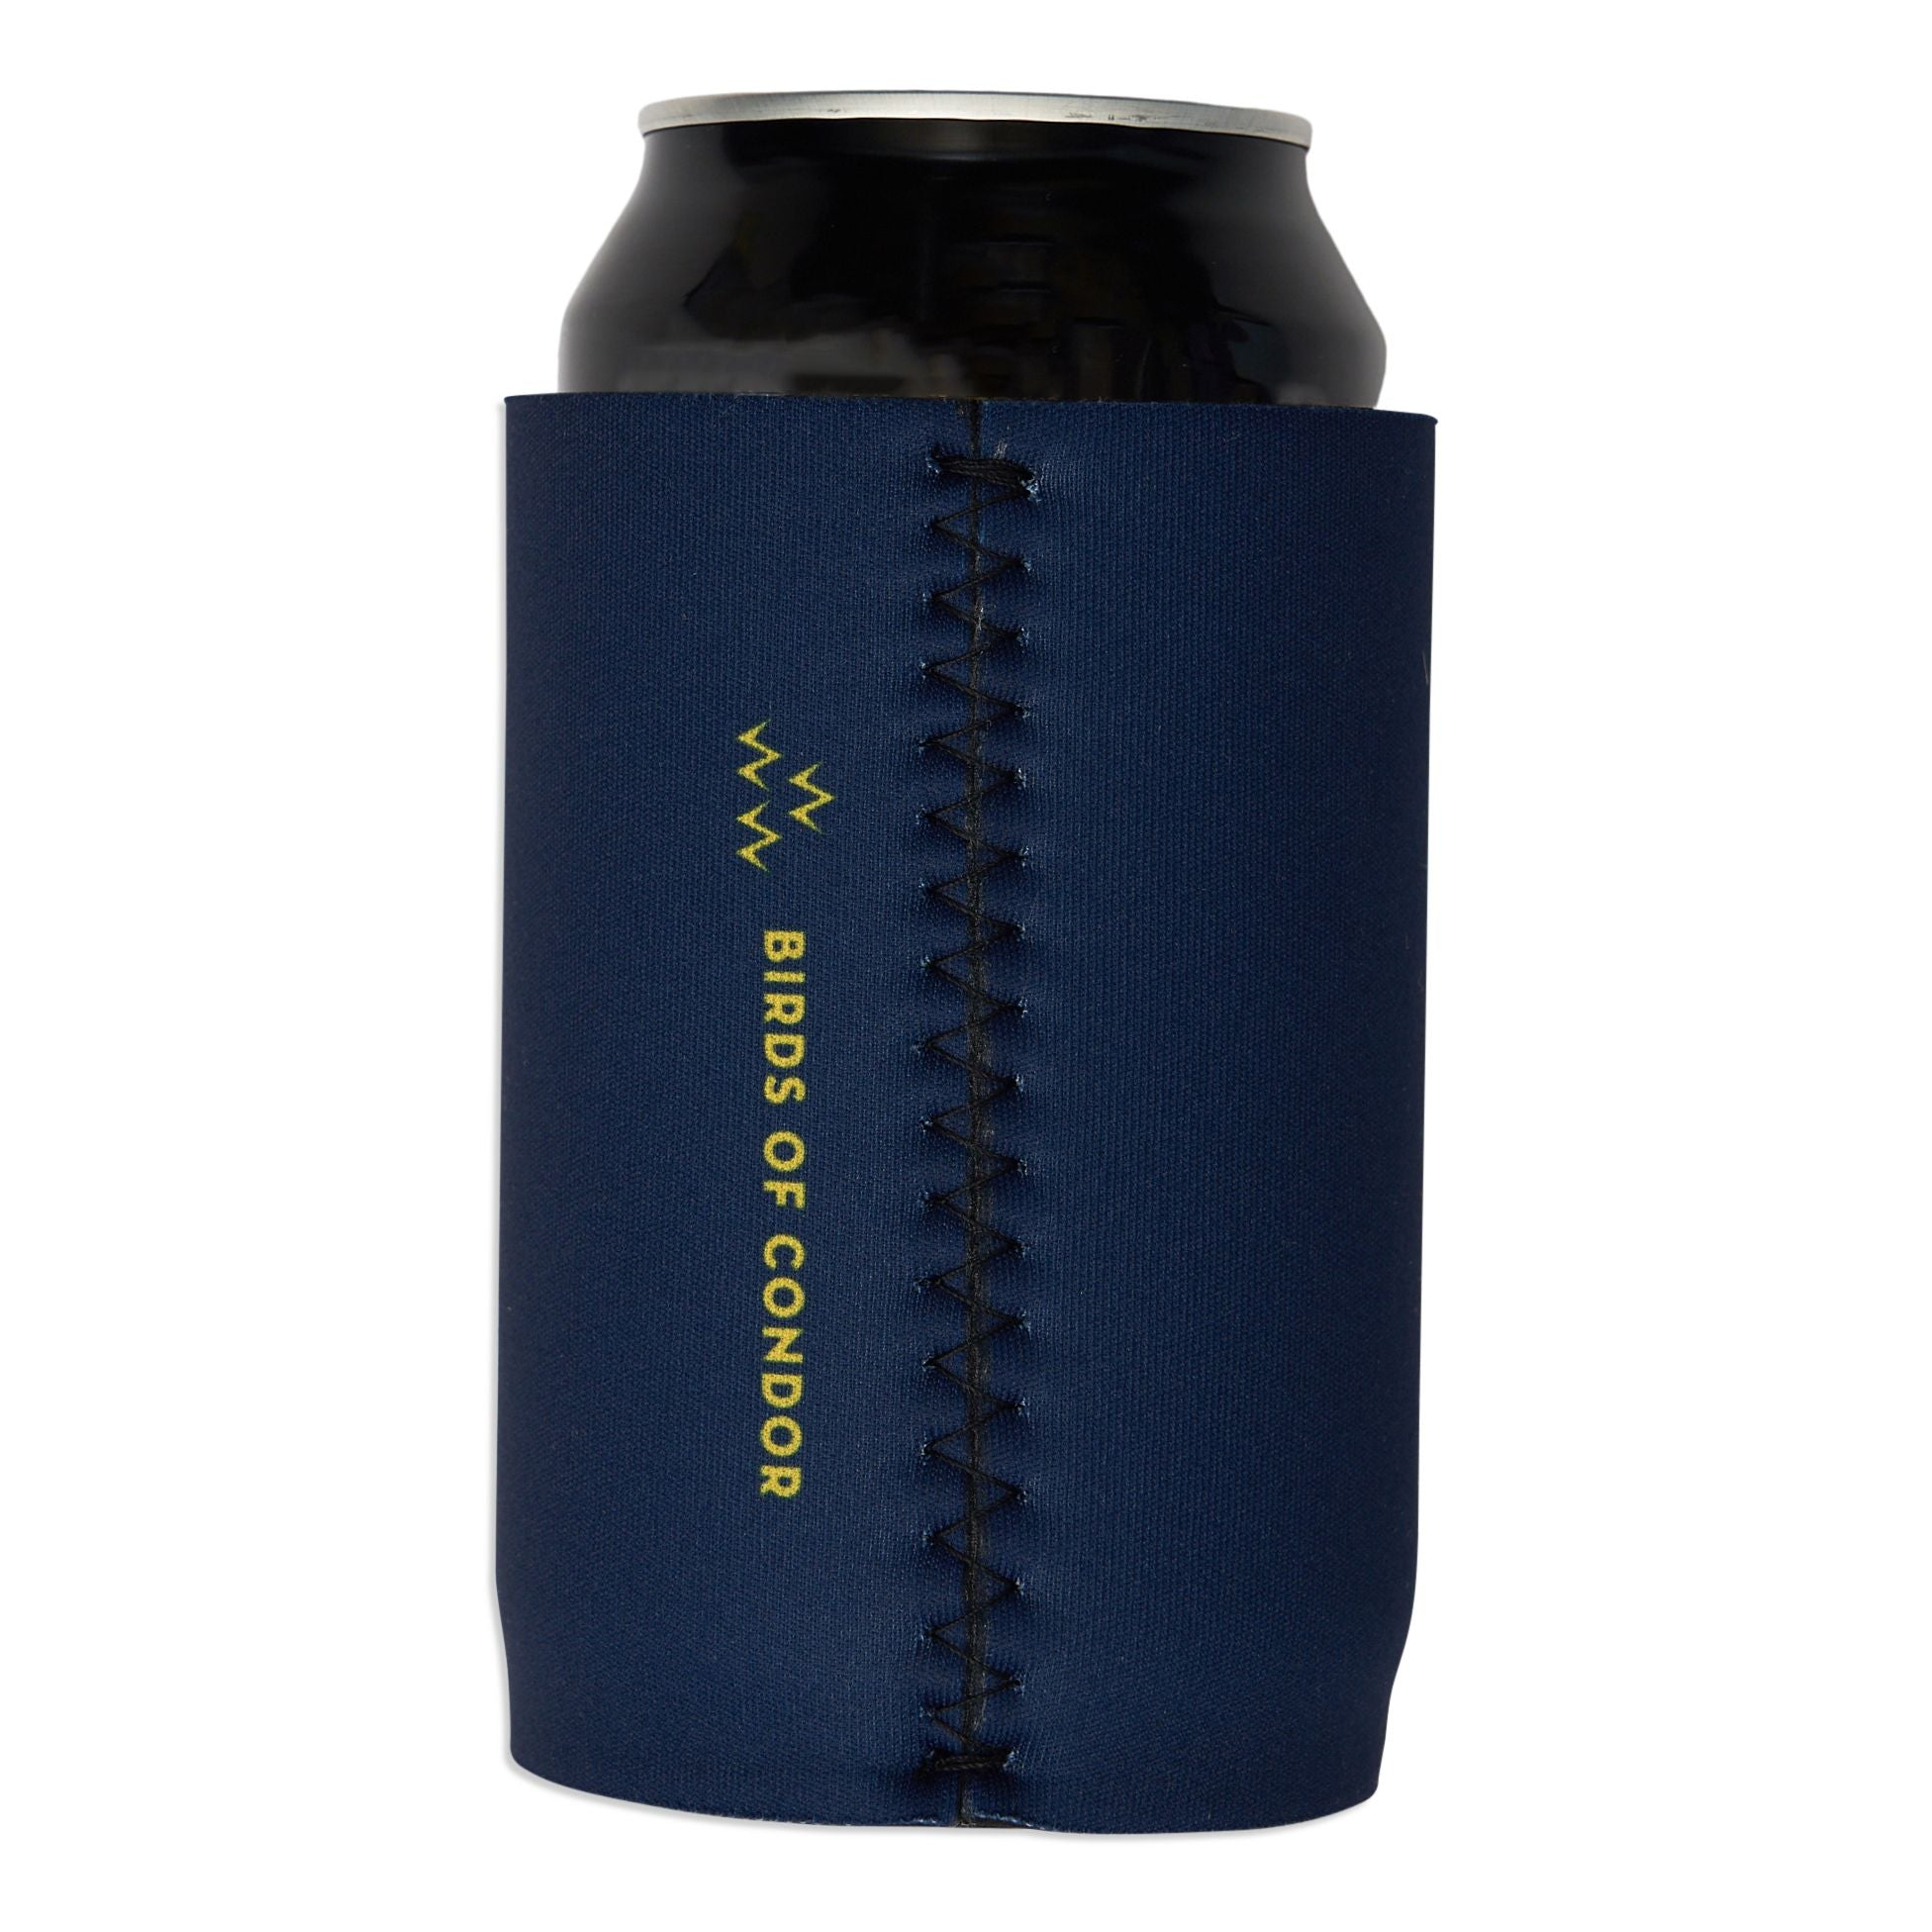 birds-of-condor-kangaroo-australia-golf-beer-stubby-cooler-koozie